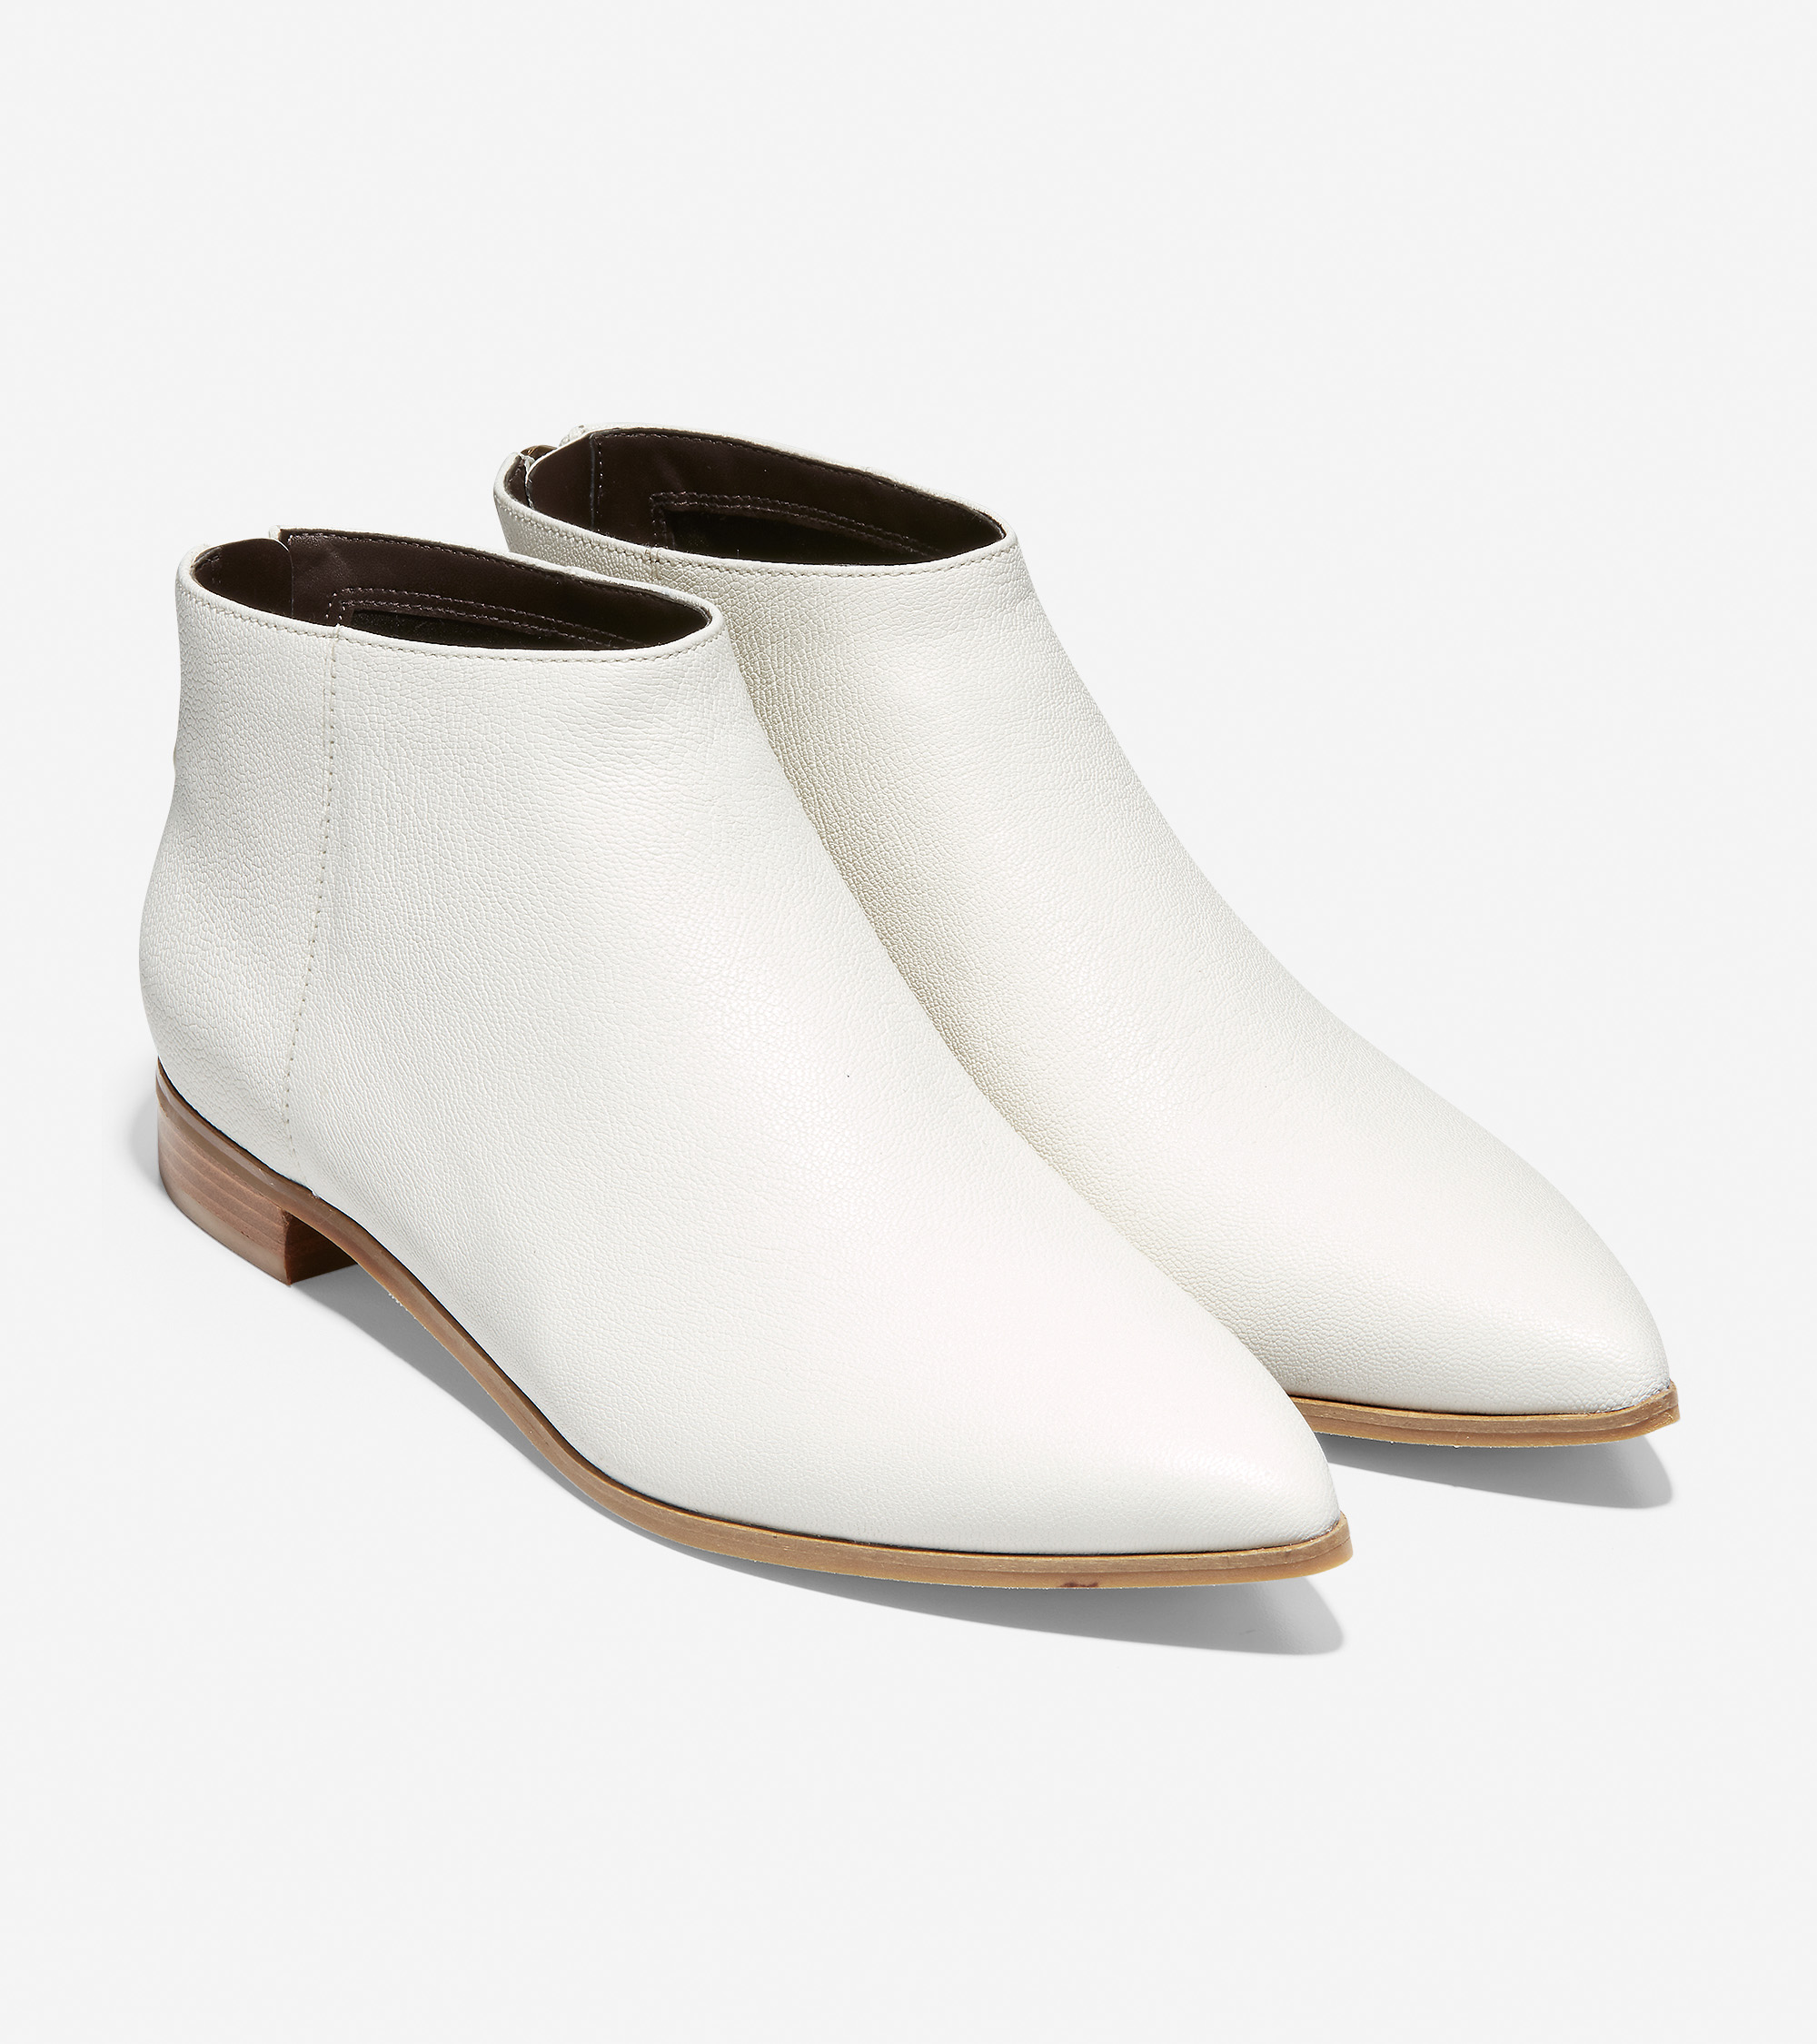 Casually cool white booties.